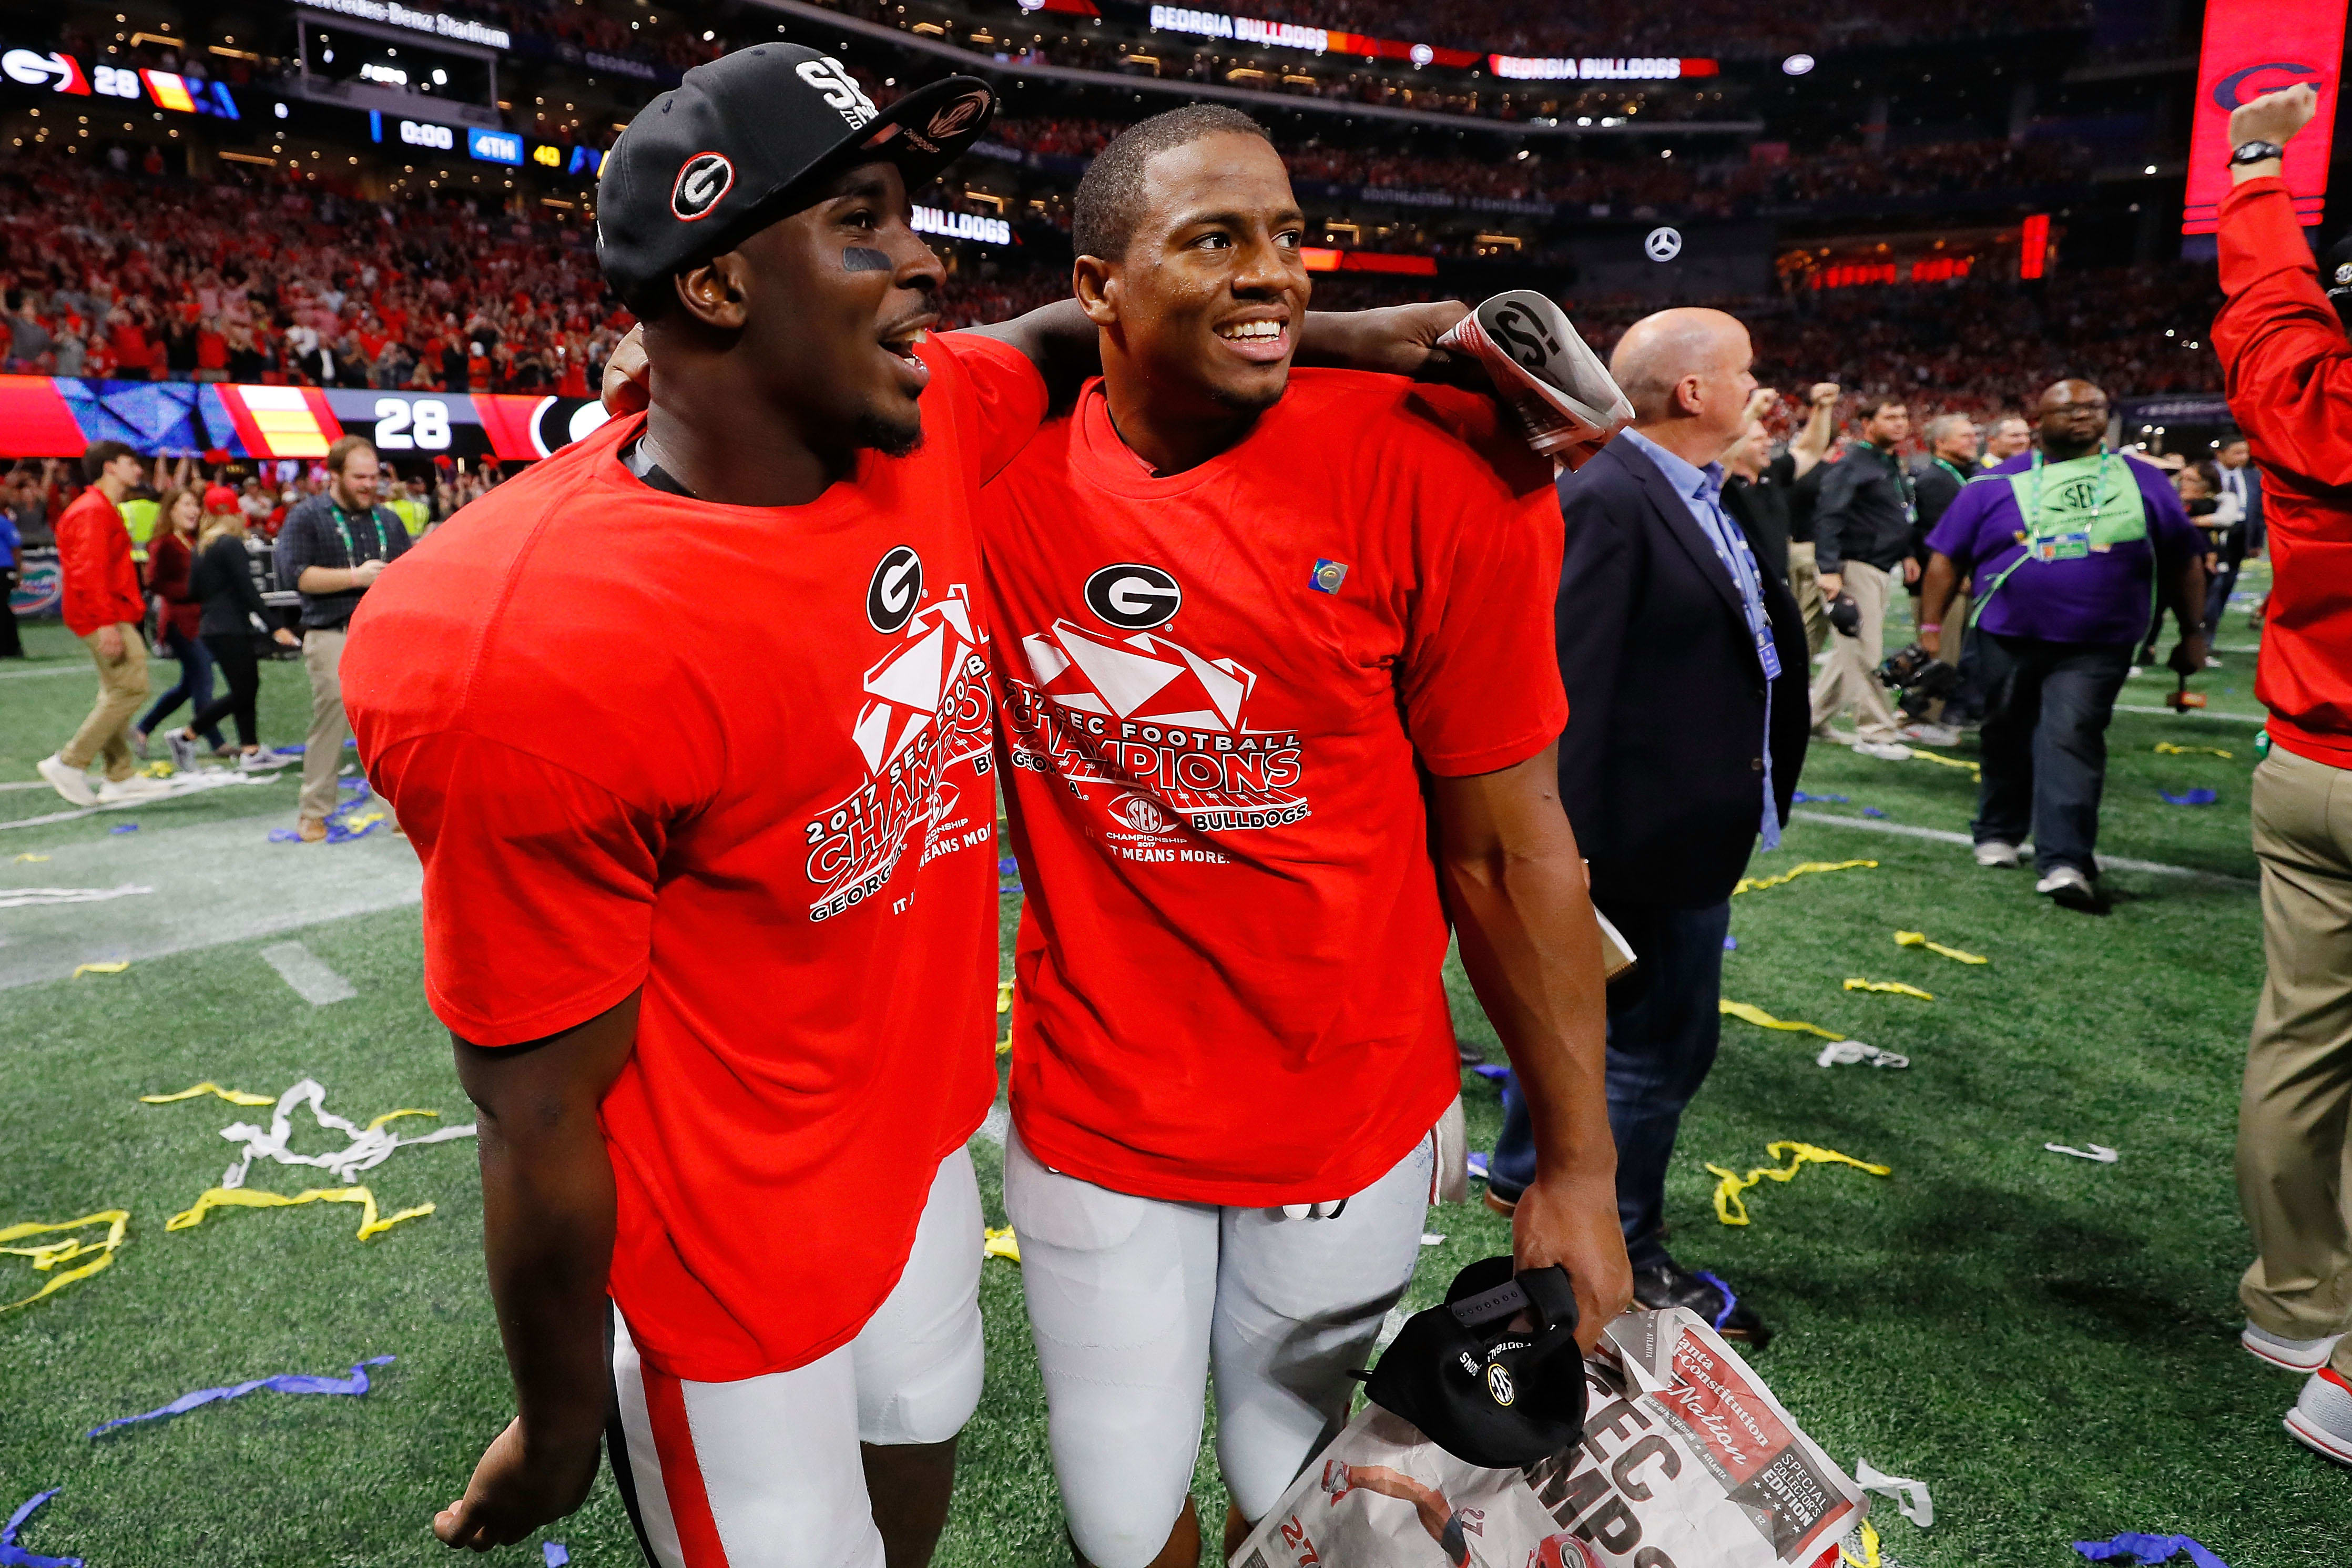 Georgia Football: Sony Michel deserved his Rose Bowl moment - Page 3